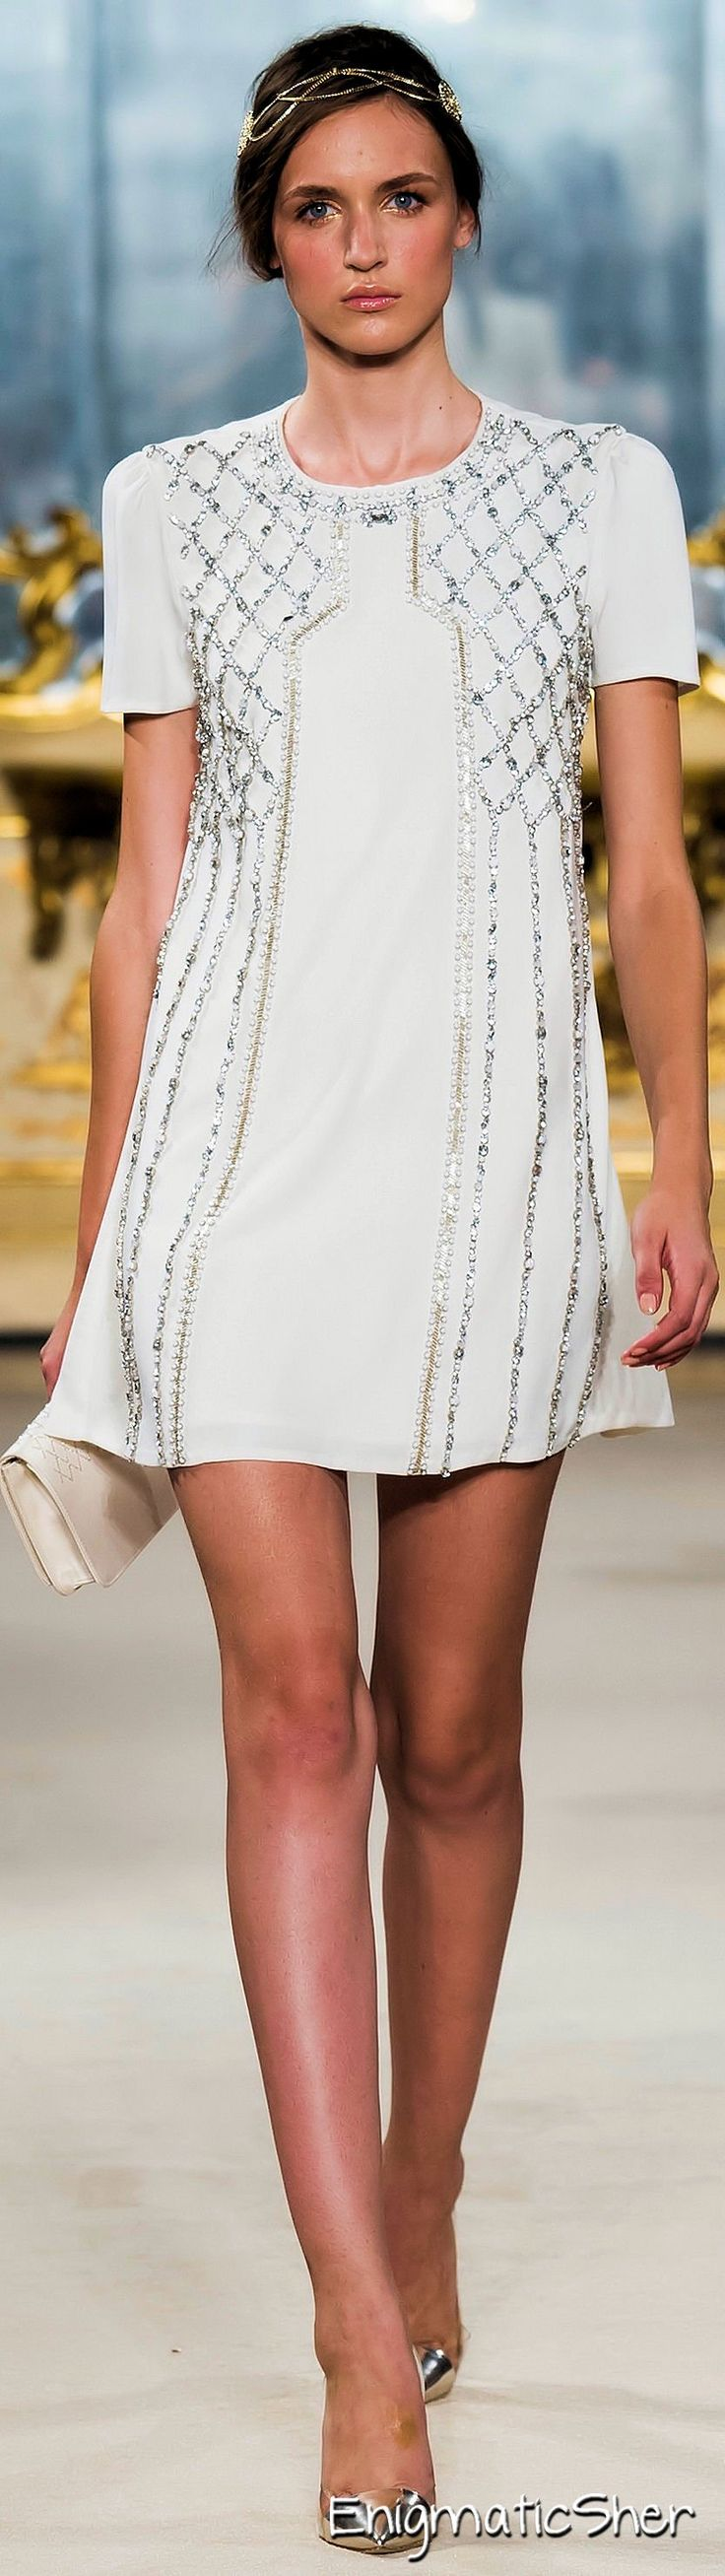 Elisabetta Franchi Spring Summer 2015 Ready-To-Wear